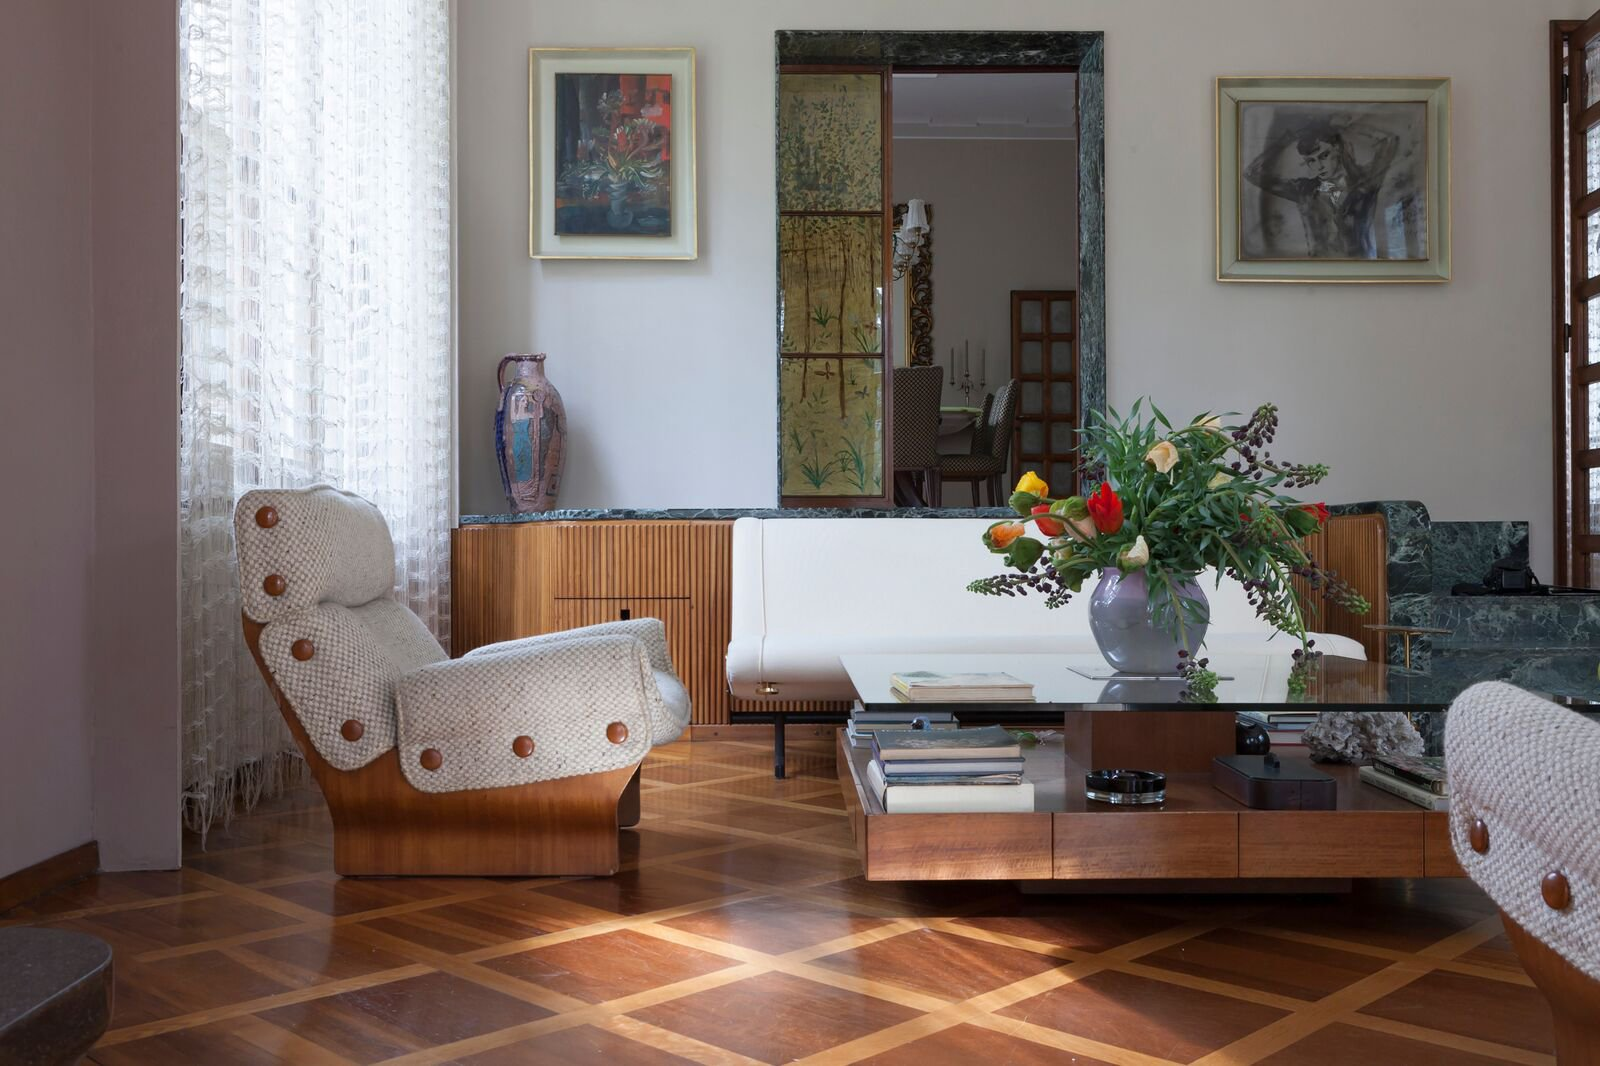 Architect and designer Osvaldo Borsani's 1943 home north of the city was opened to the public for the first time.